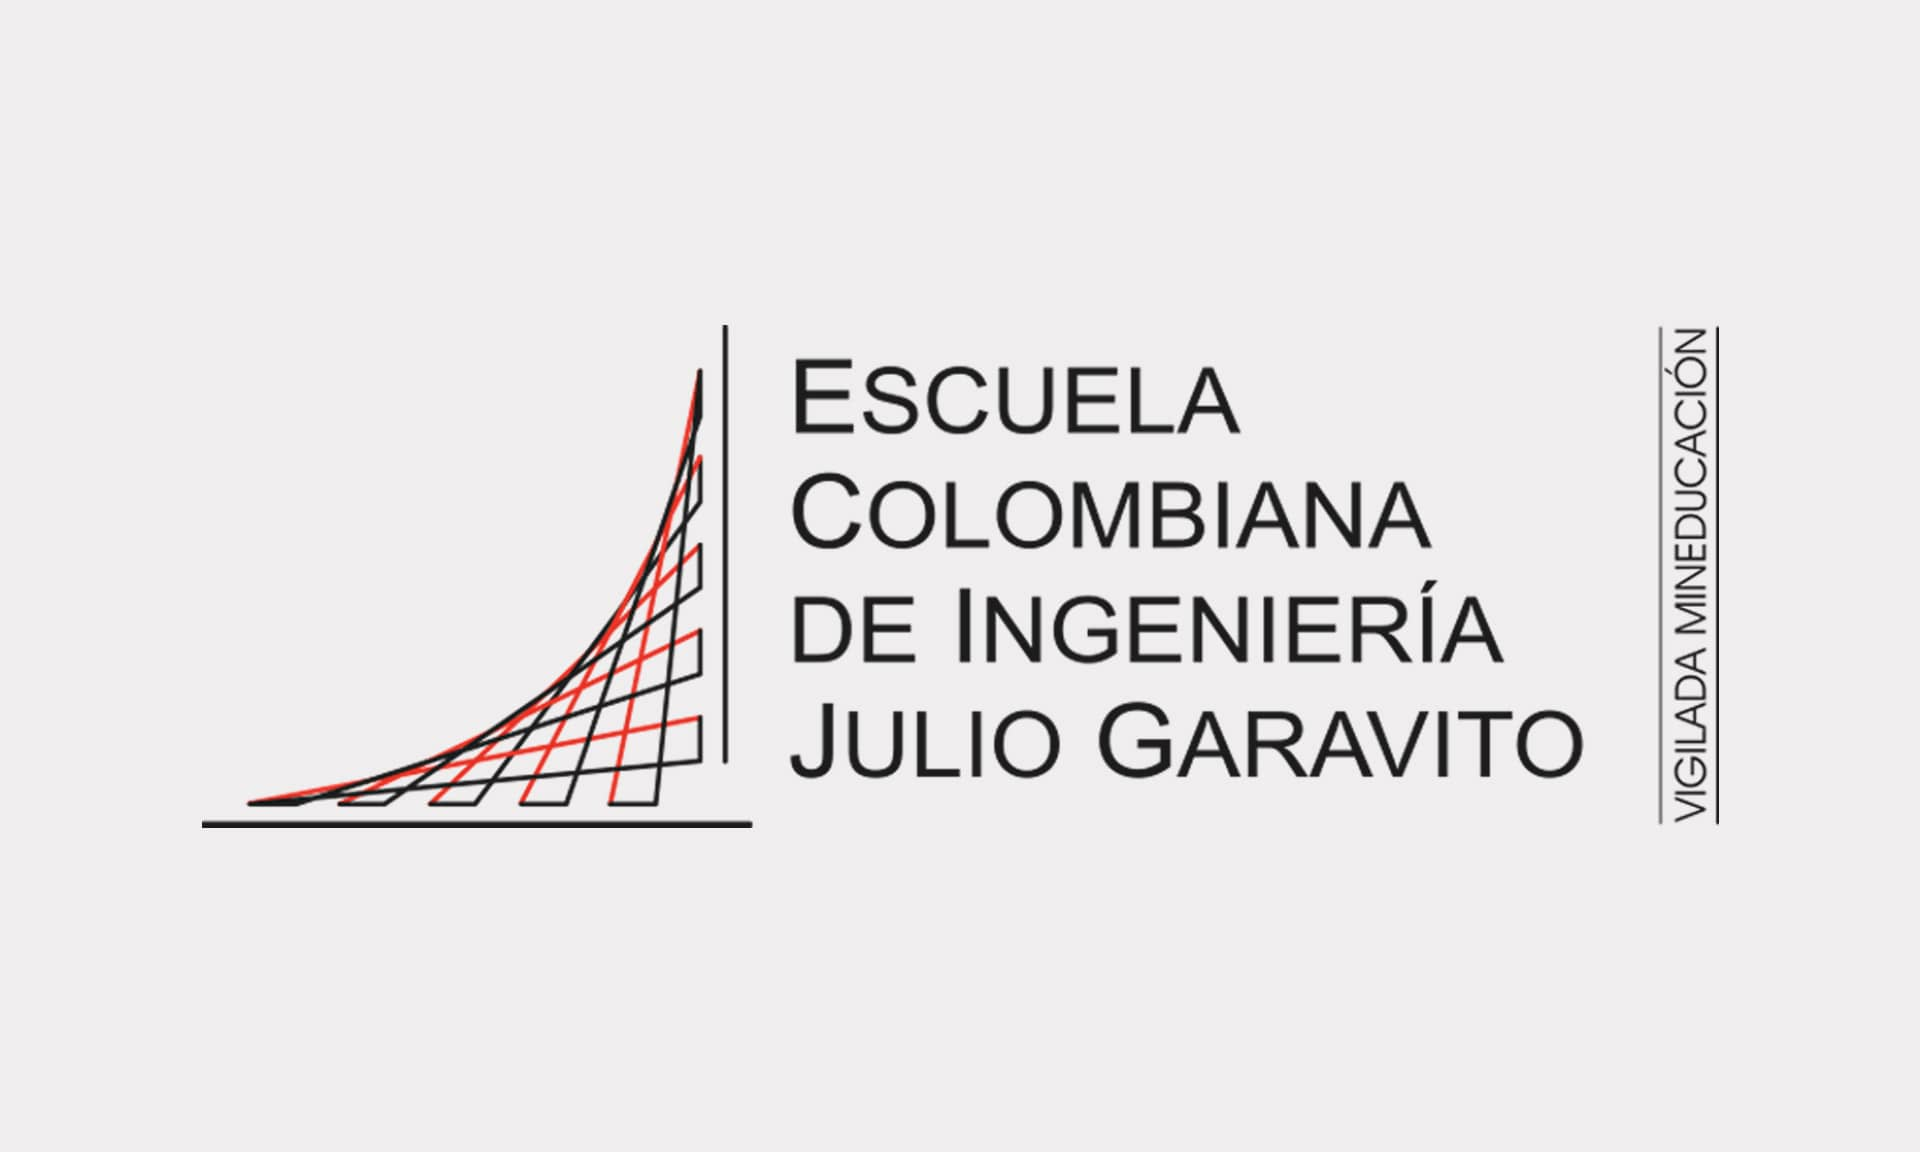 Local de testes: Escuela Colombiana de Ingeniería Julio Garavito